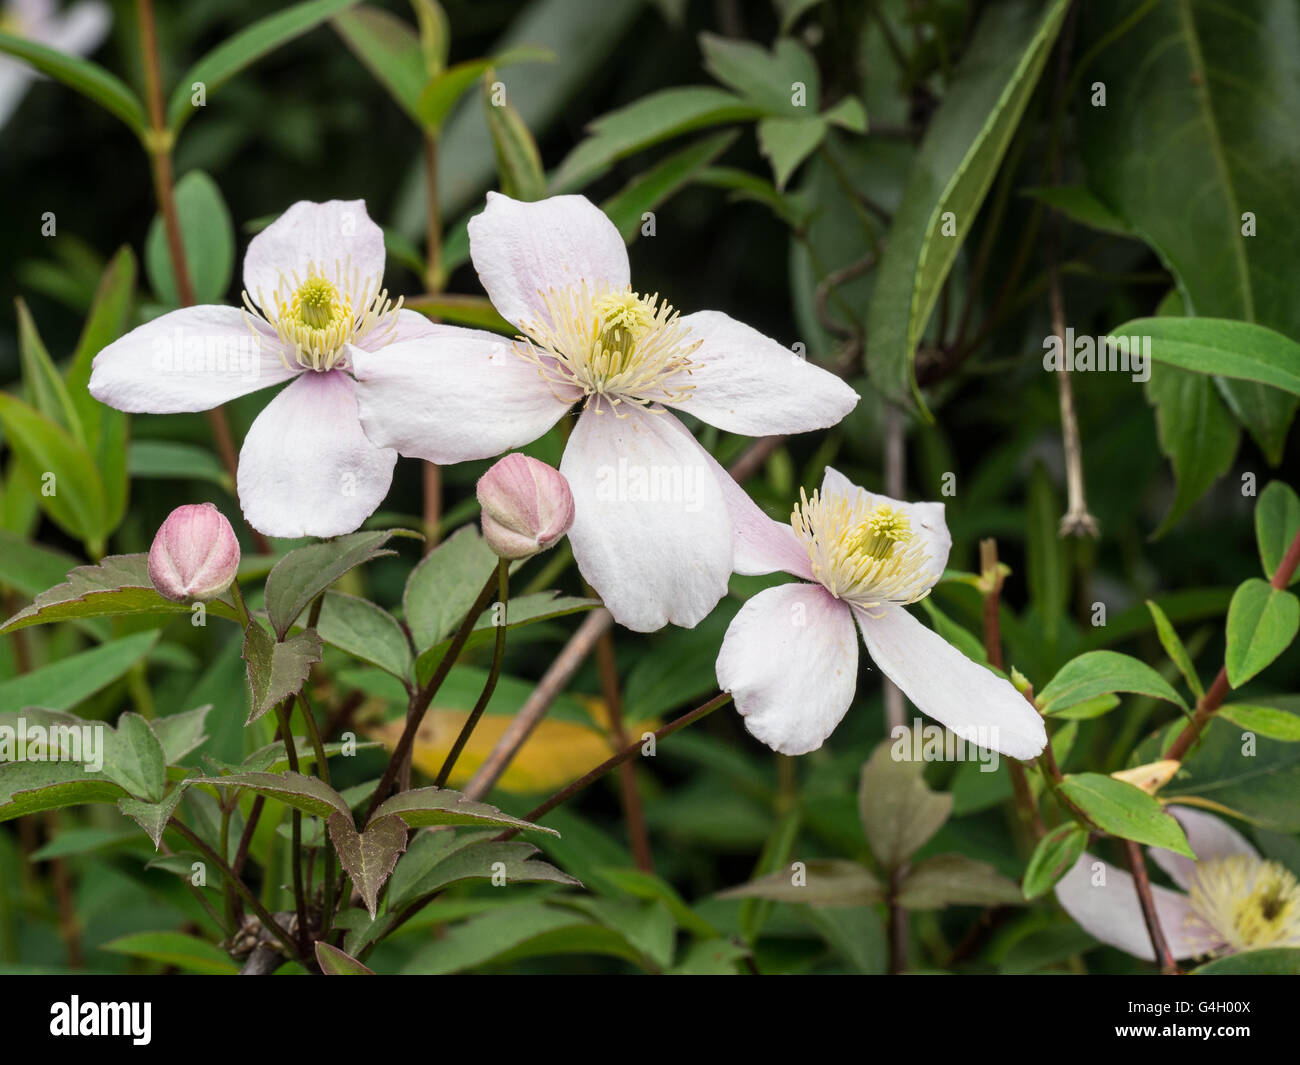 Clematis Pink Perfection flowers Stock Royalty Free Image 1